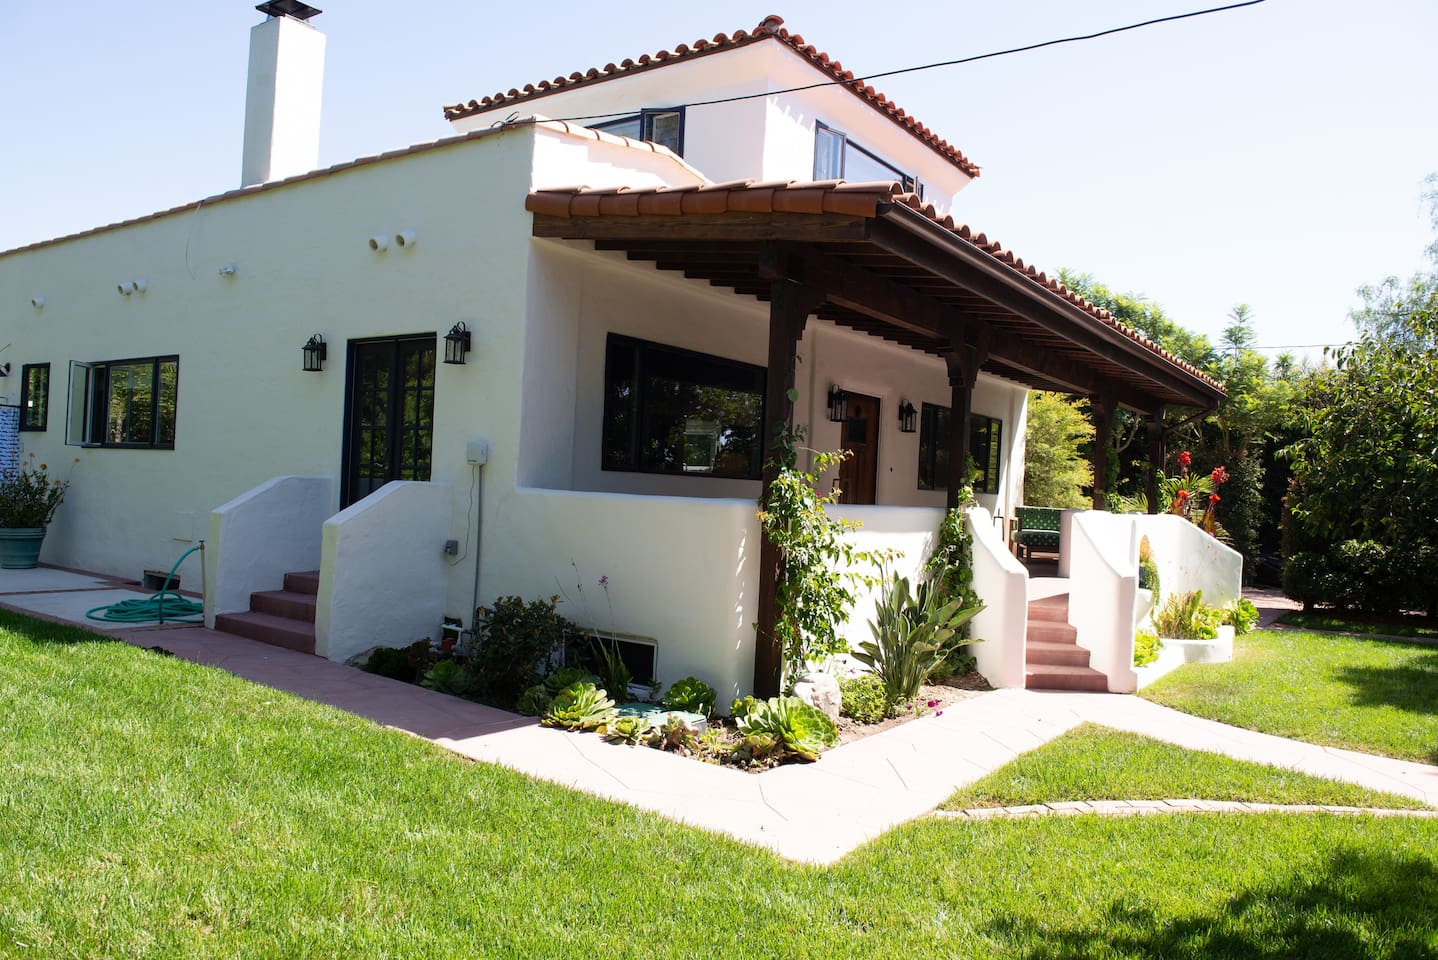 Welcome! This Santa Barbara bungalow with heated pool and spa is a spacious and private oasis on the West Mesa, and a short walk to the beach.